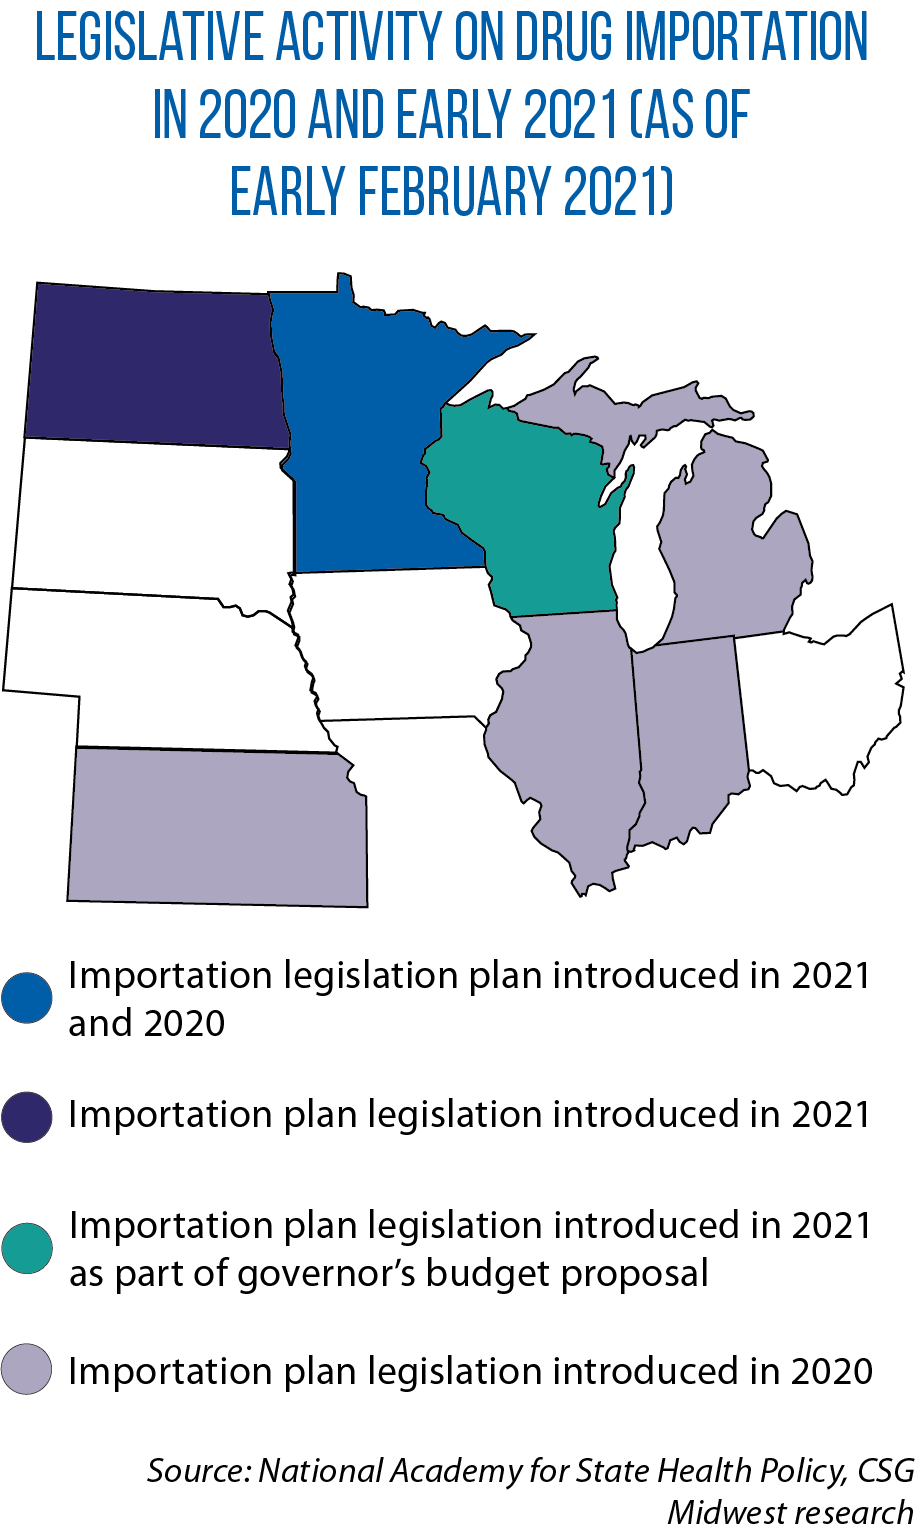 Map of 2020-21 legislative activity on drug importation in Midwestern states